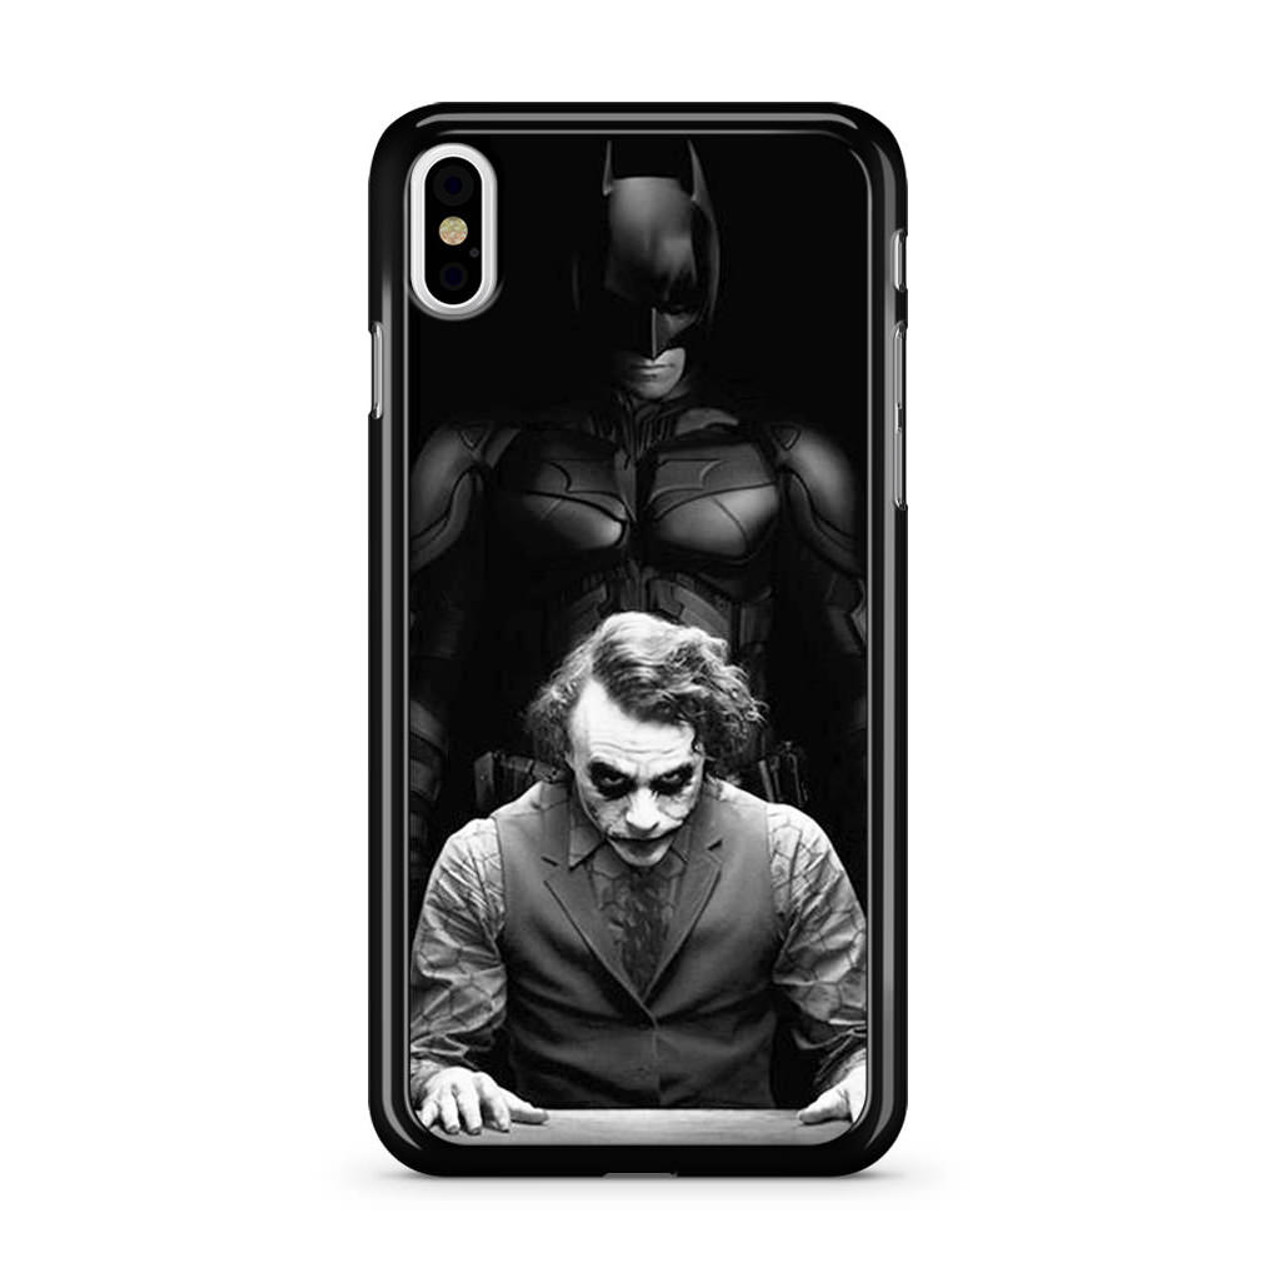 outlet store 9b424 9bbe2 Batman and Joker iPhone XS Max Case